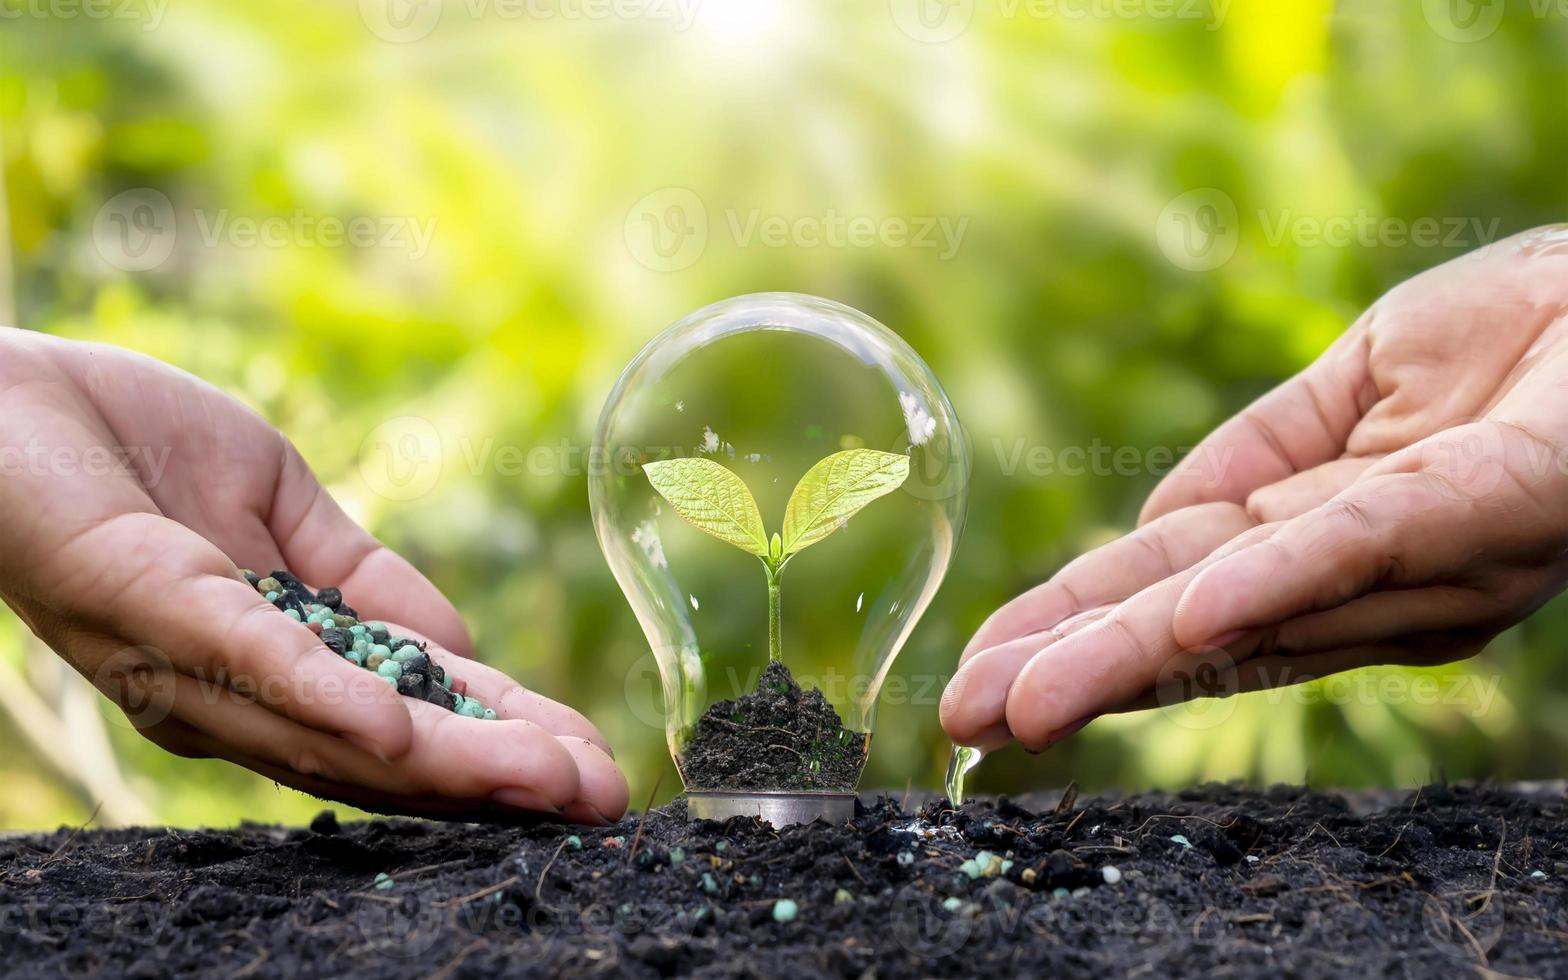 People's hands are helping to fertilize and water the bulbs growing in energy, ideas, natural resources and the environment. photo